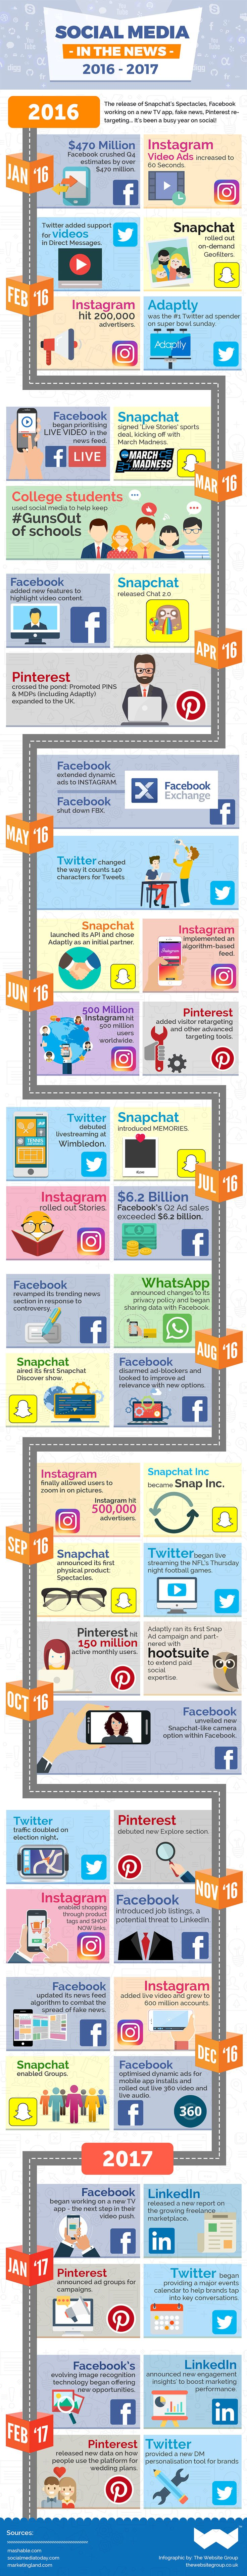 This infographic highlights some of the main headlines surrounding social media throughout 2016 and early 2017.